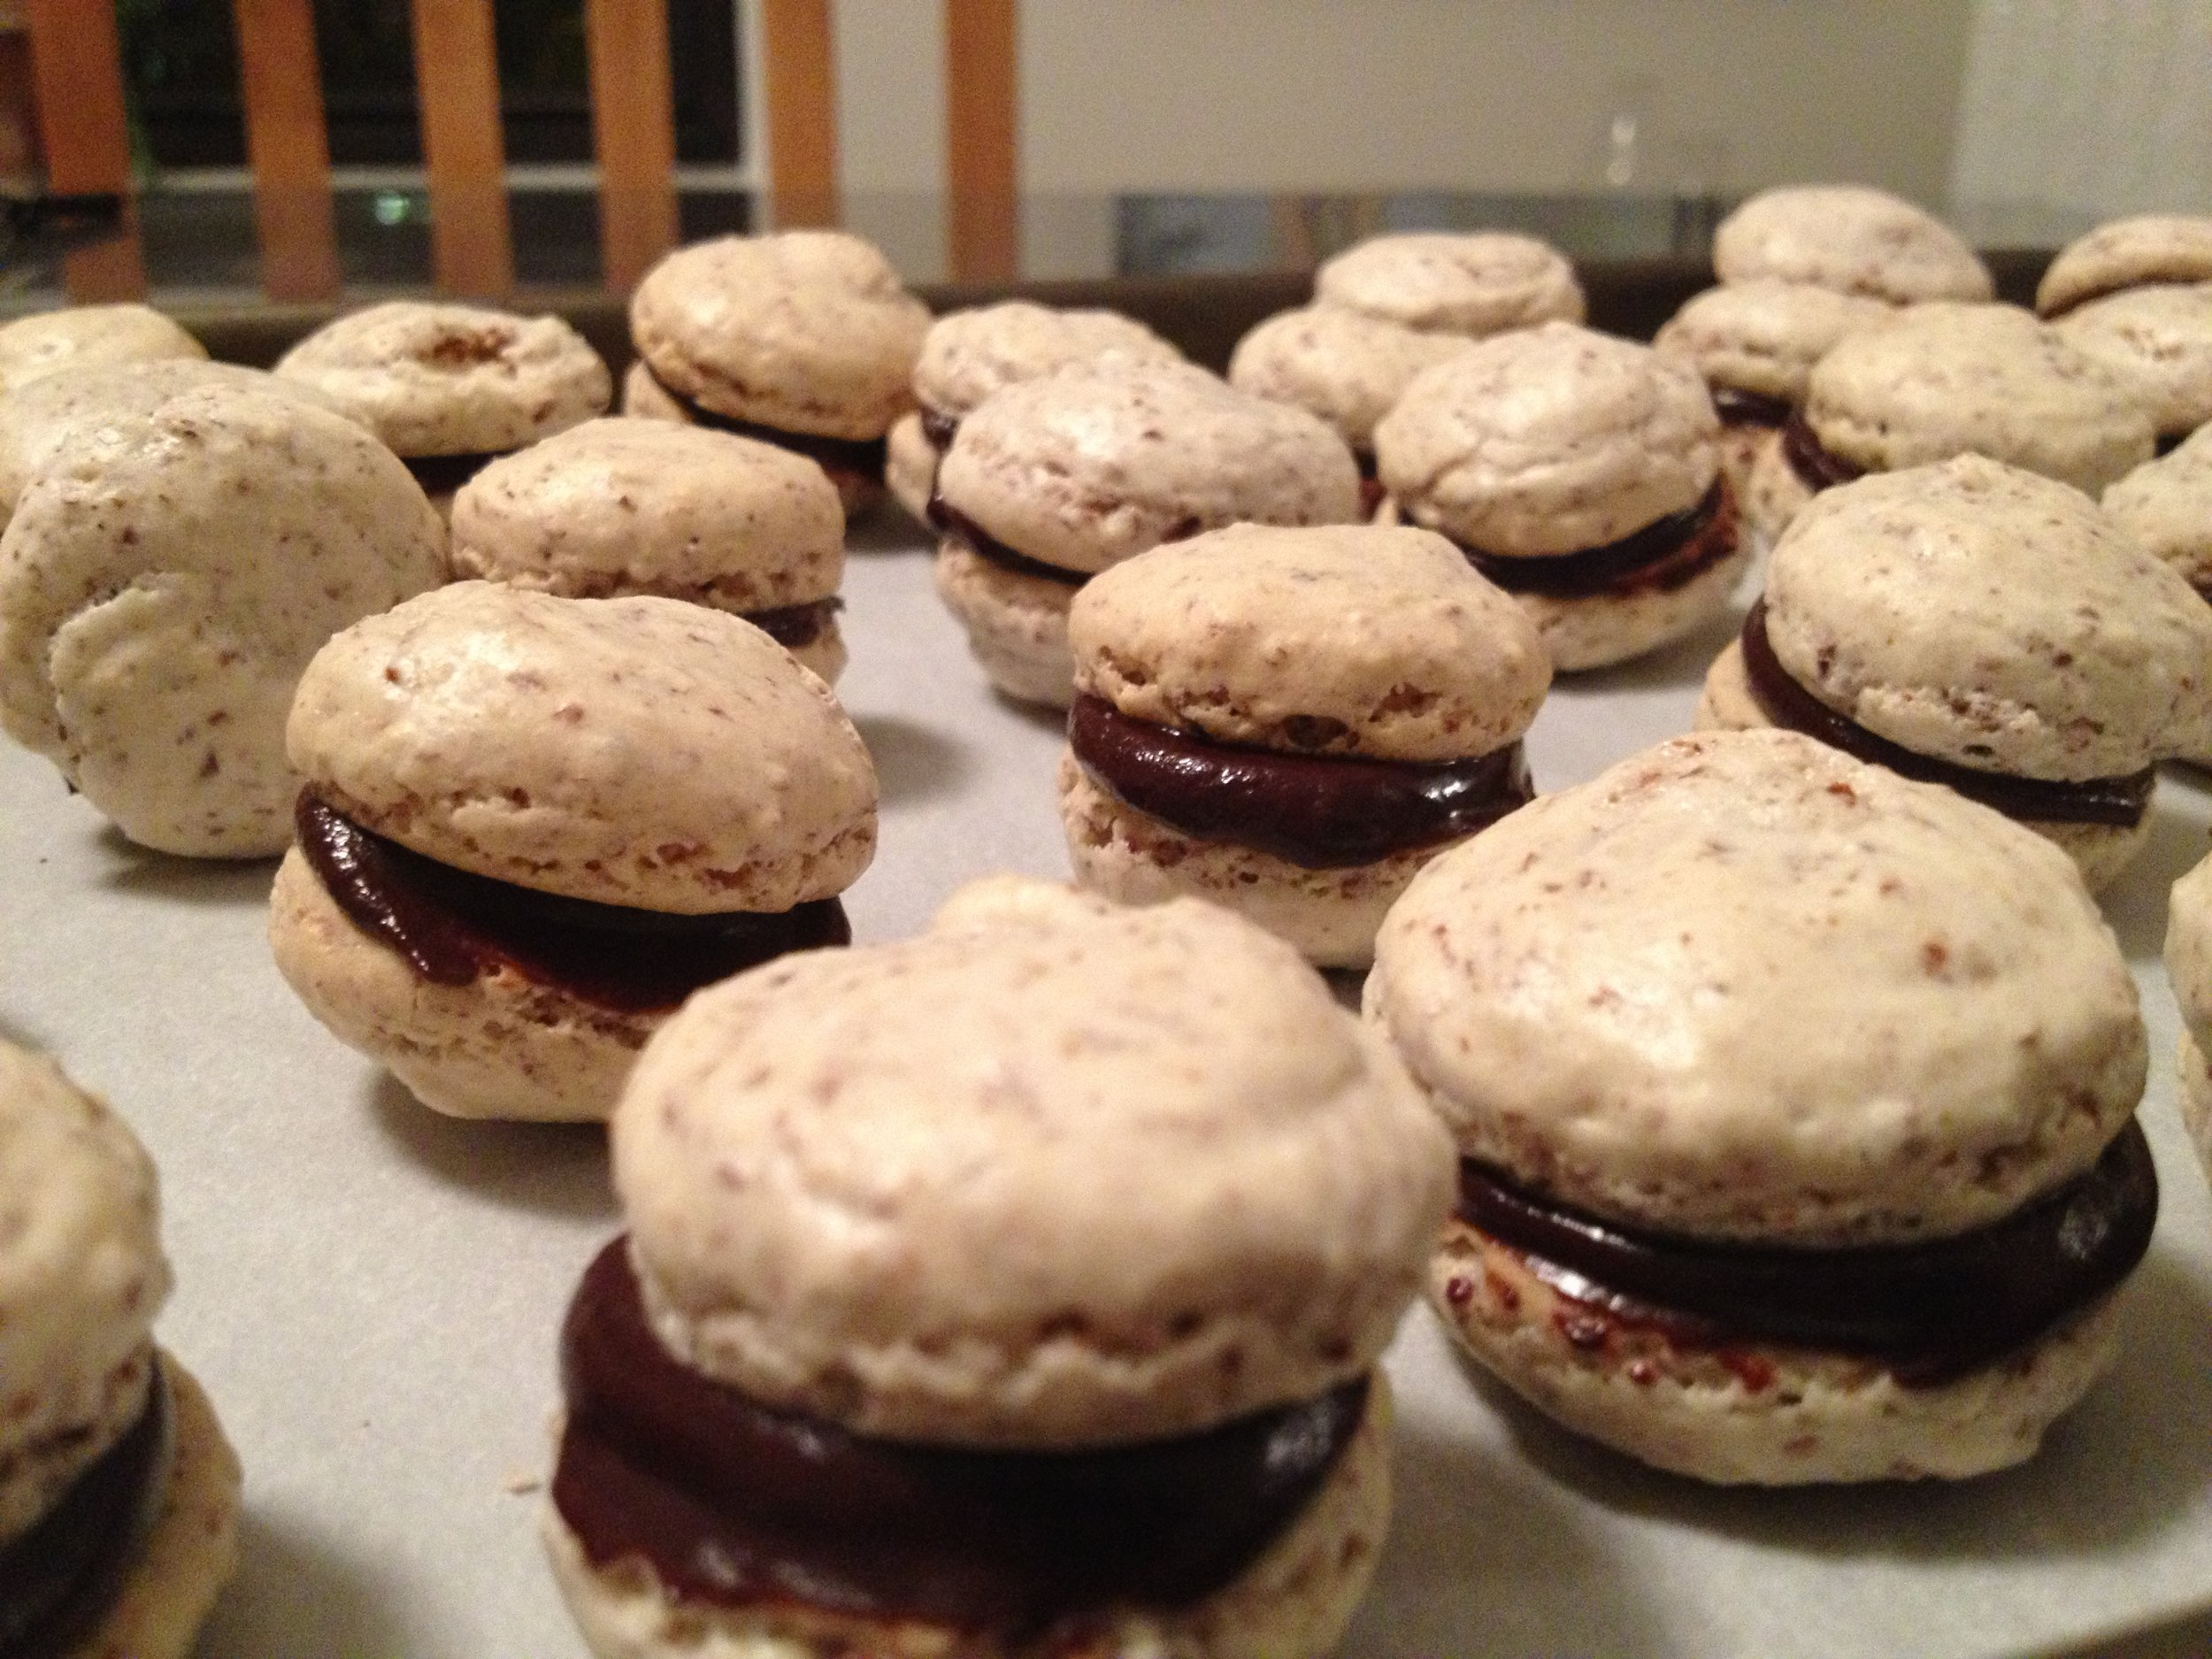 French Almond Macaroons, sandwiched with Dark Chocolate Ganache